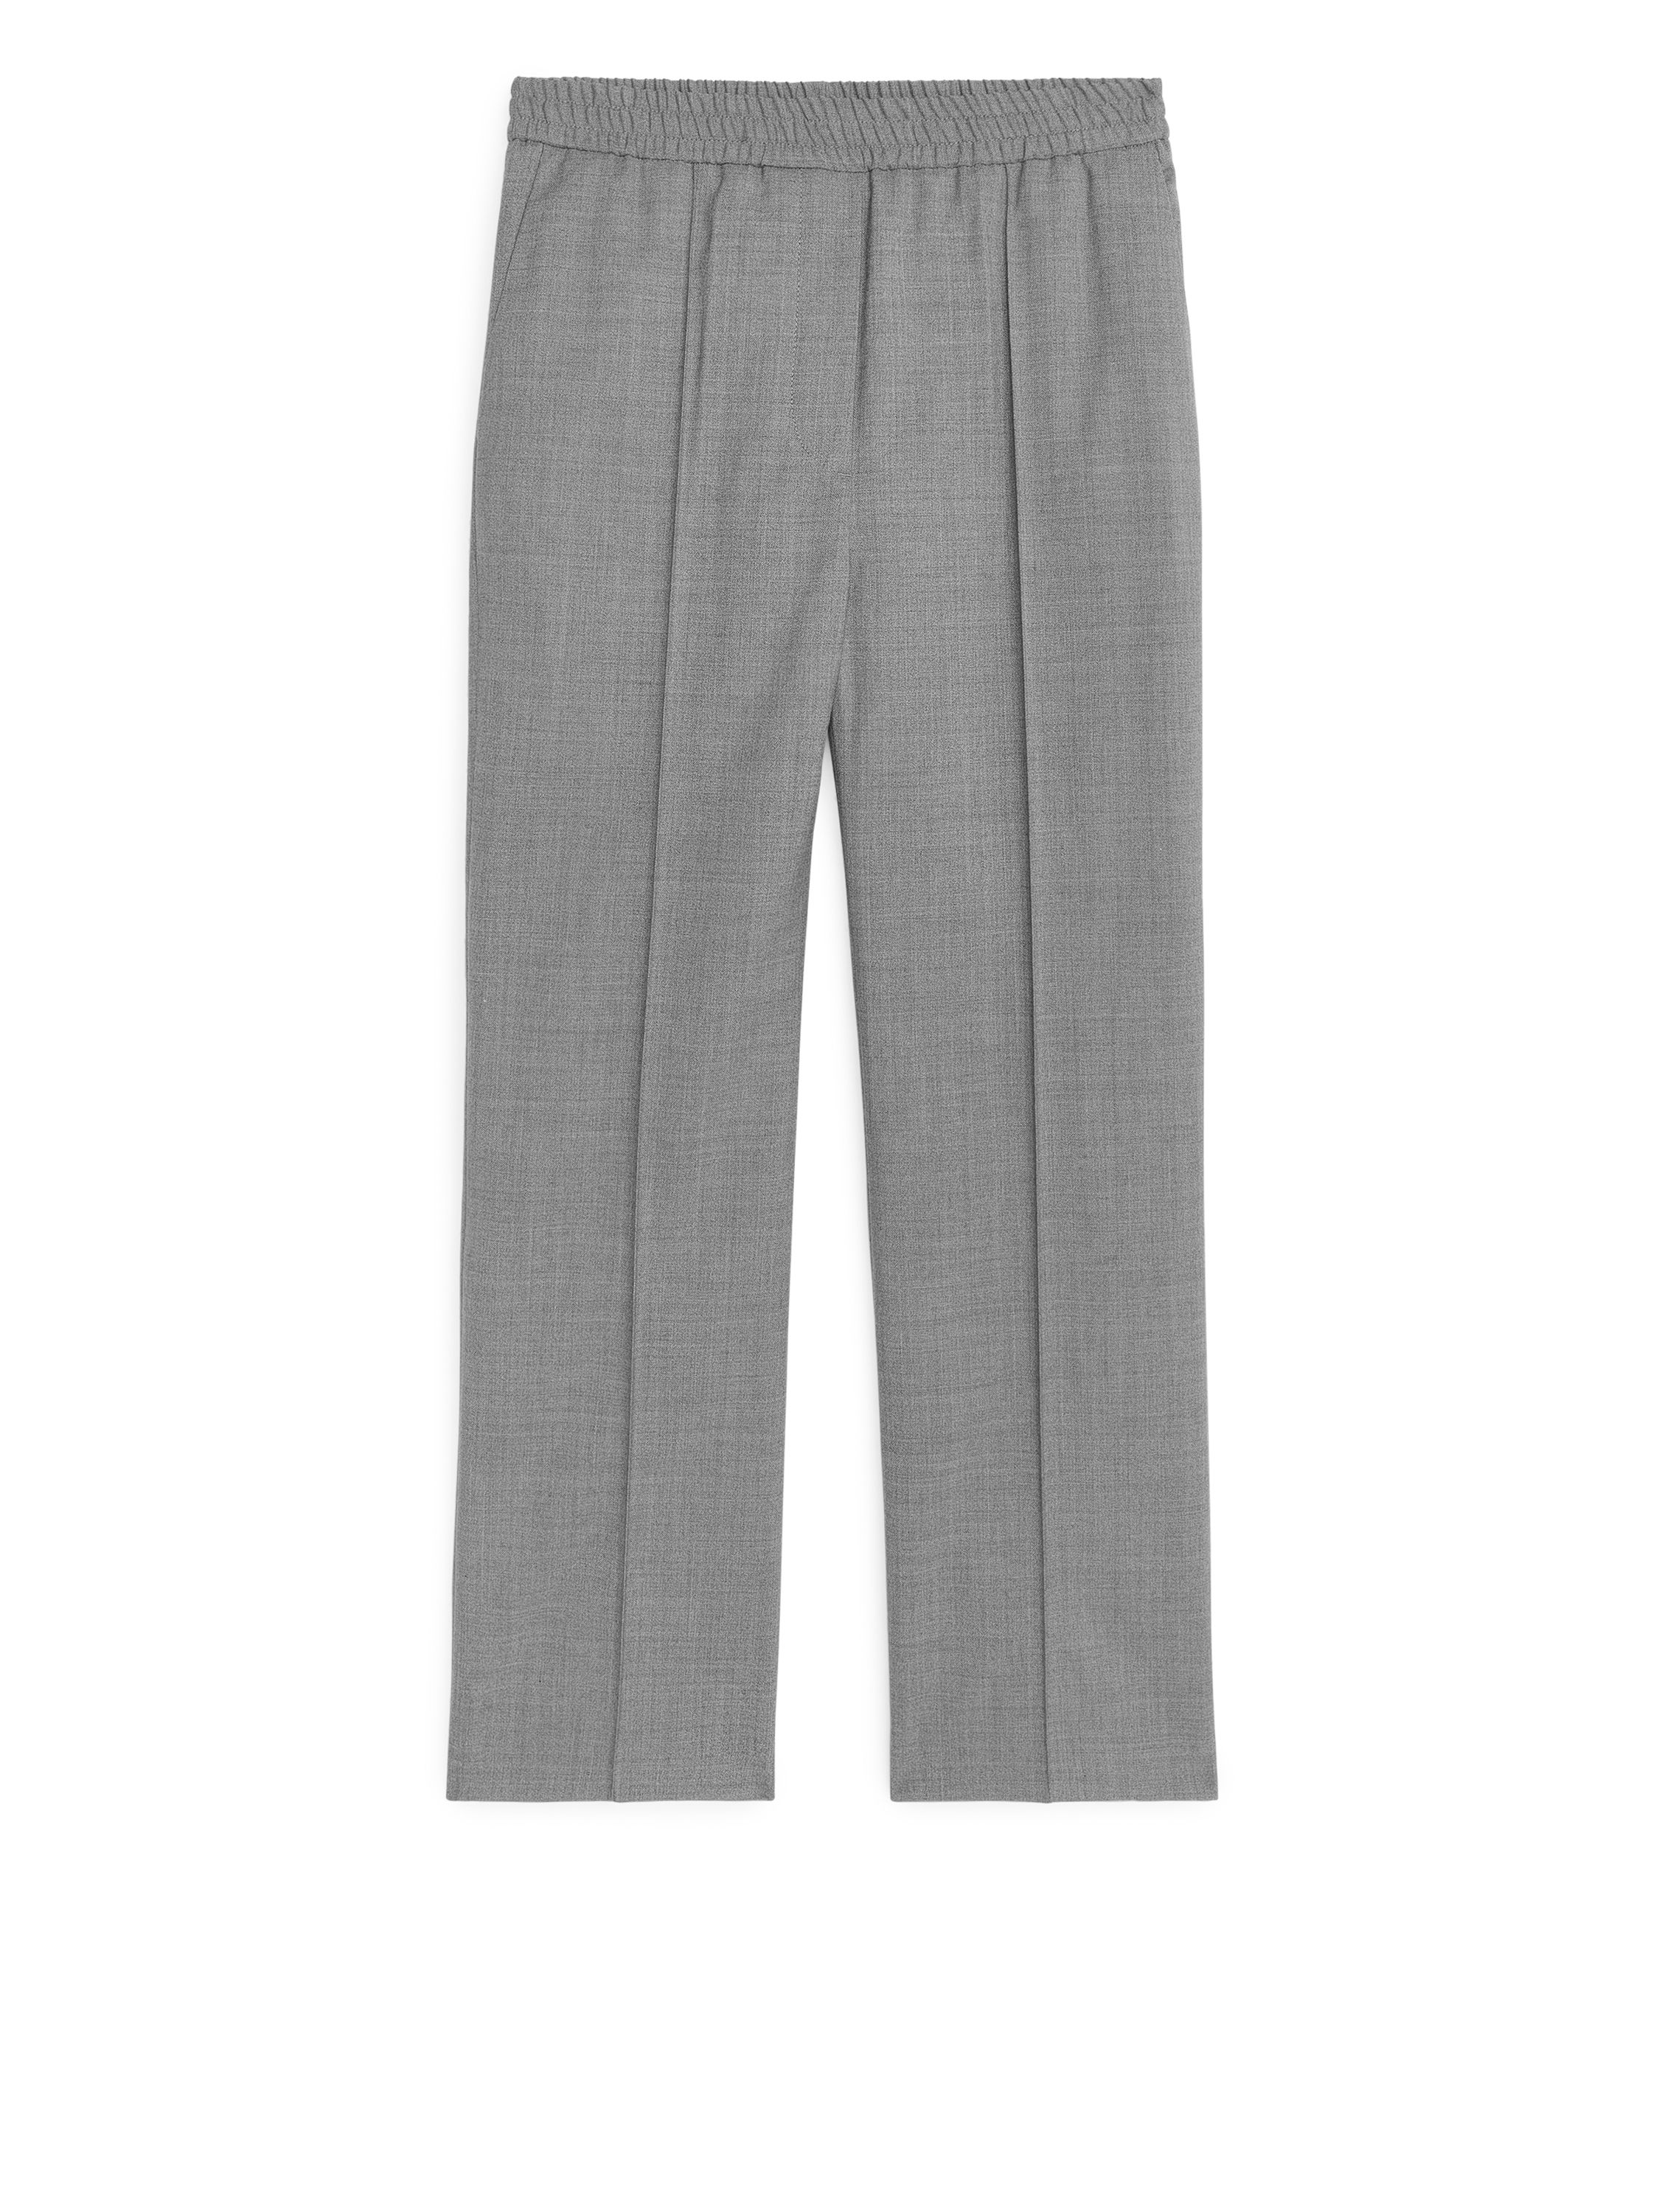 Fabric Swatch image of Arket elastic waist wool trousers in grey